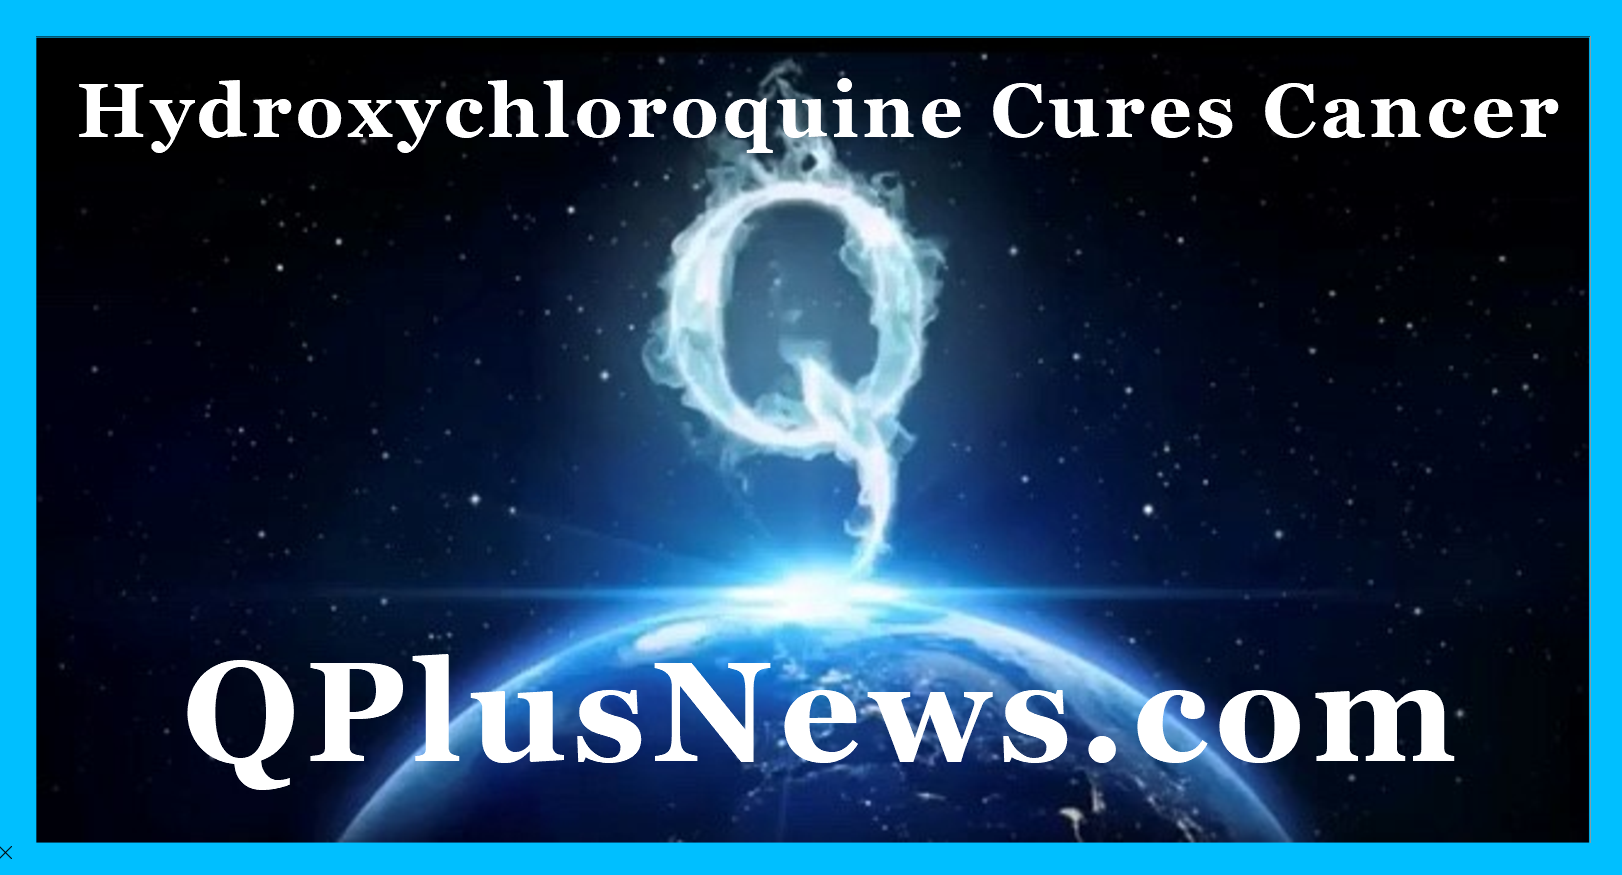 QPlusNews Hydroxychloroquine Cures Cancer